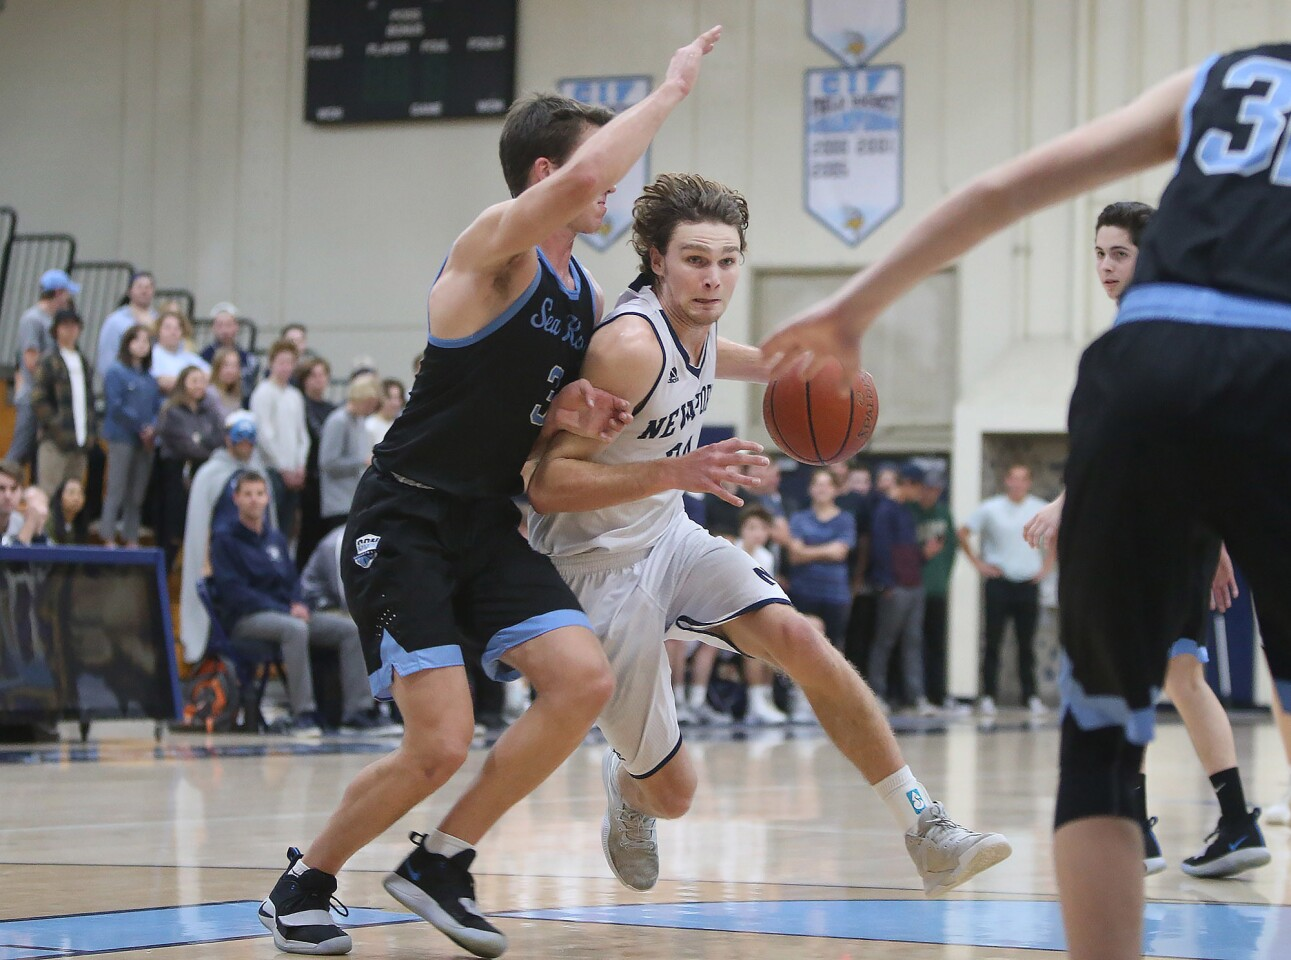 Photo Gallery: Corona del Mar vs. Newport Harbor in boys' basketball